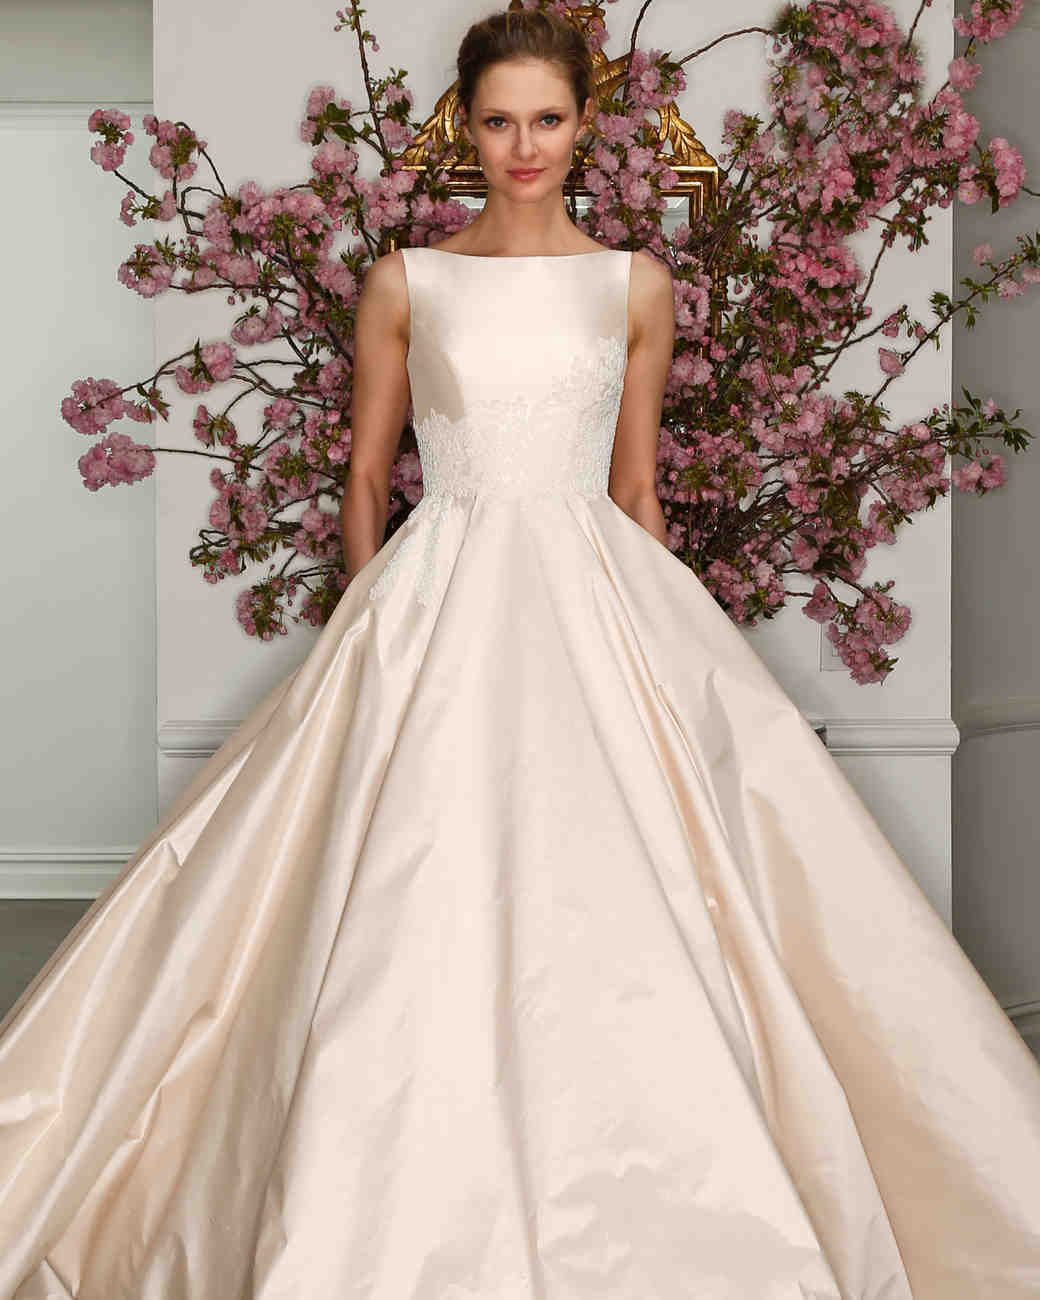 Legends by Romona Keveza Spring 2017 Wedding Dress Collection ...